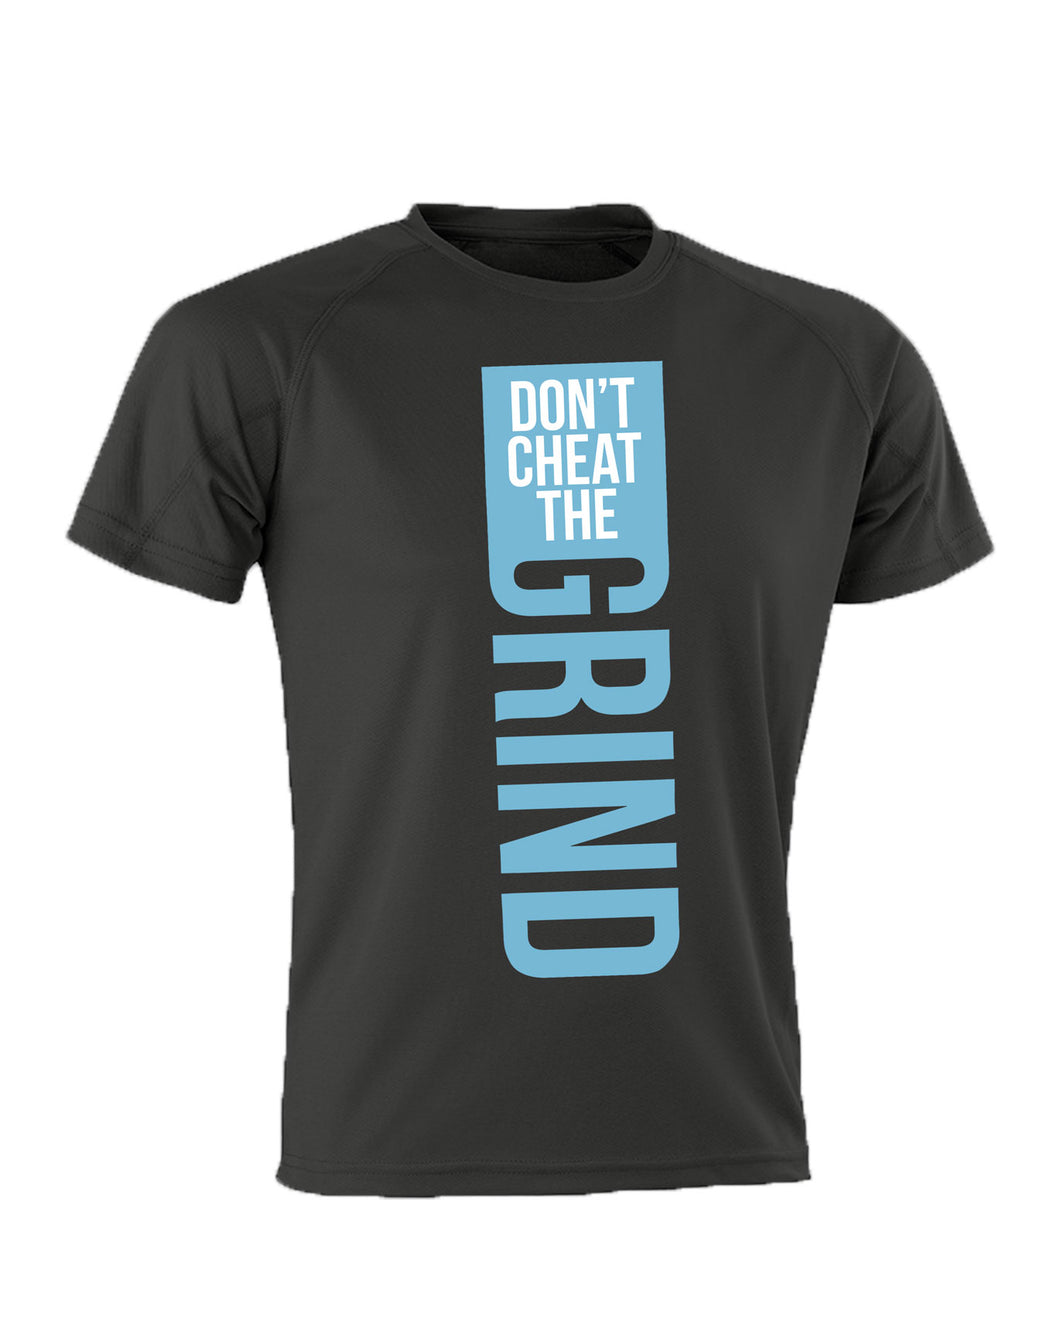 Don't Cheat The Grind V1 Performance Black T-Shirt